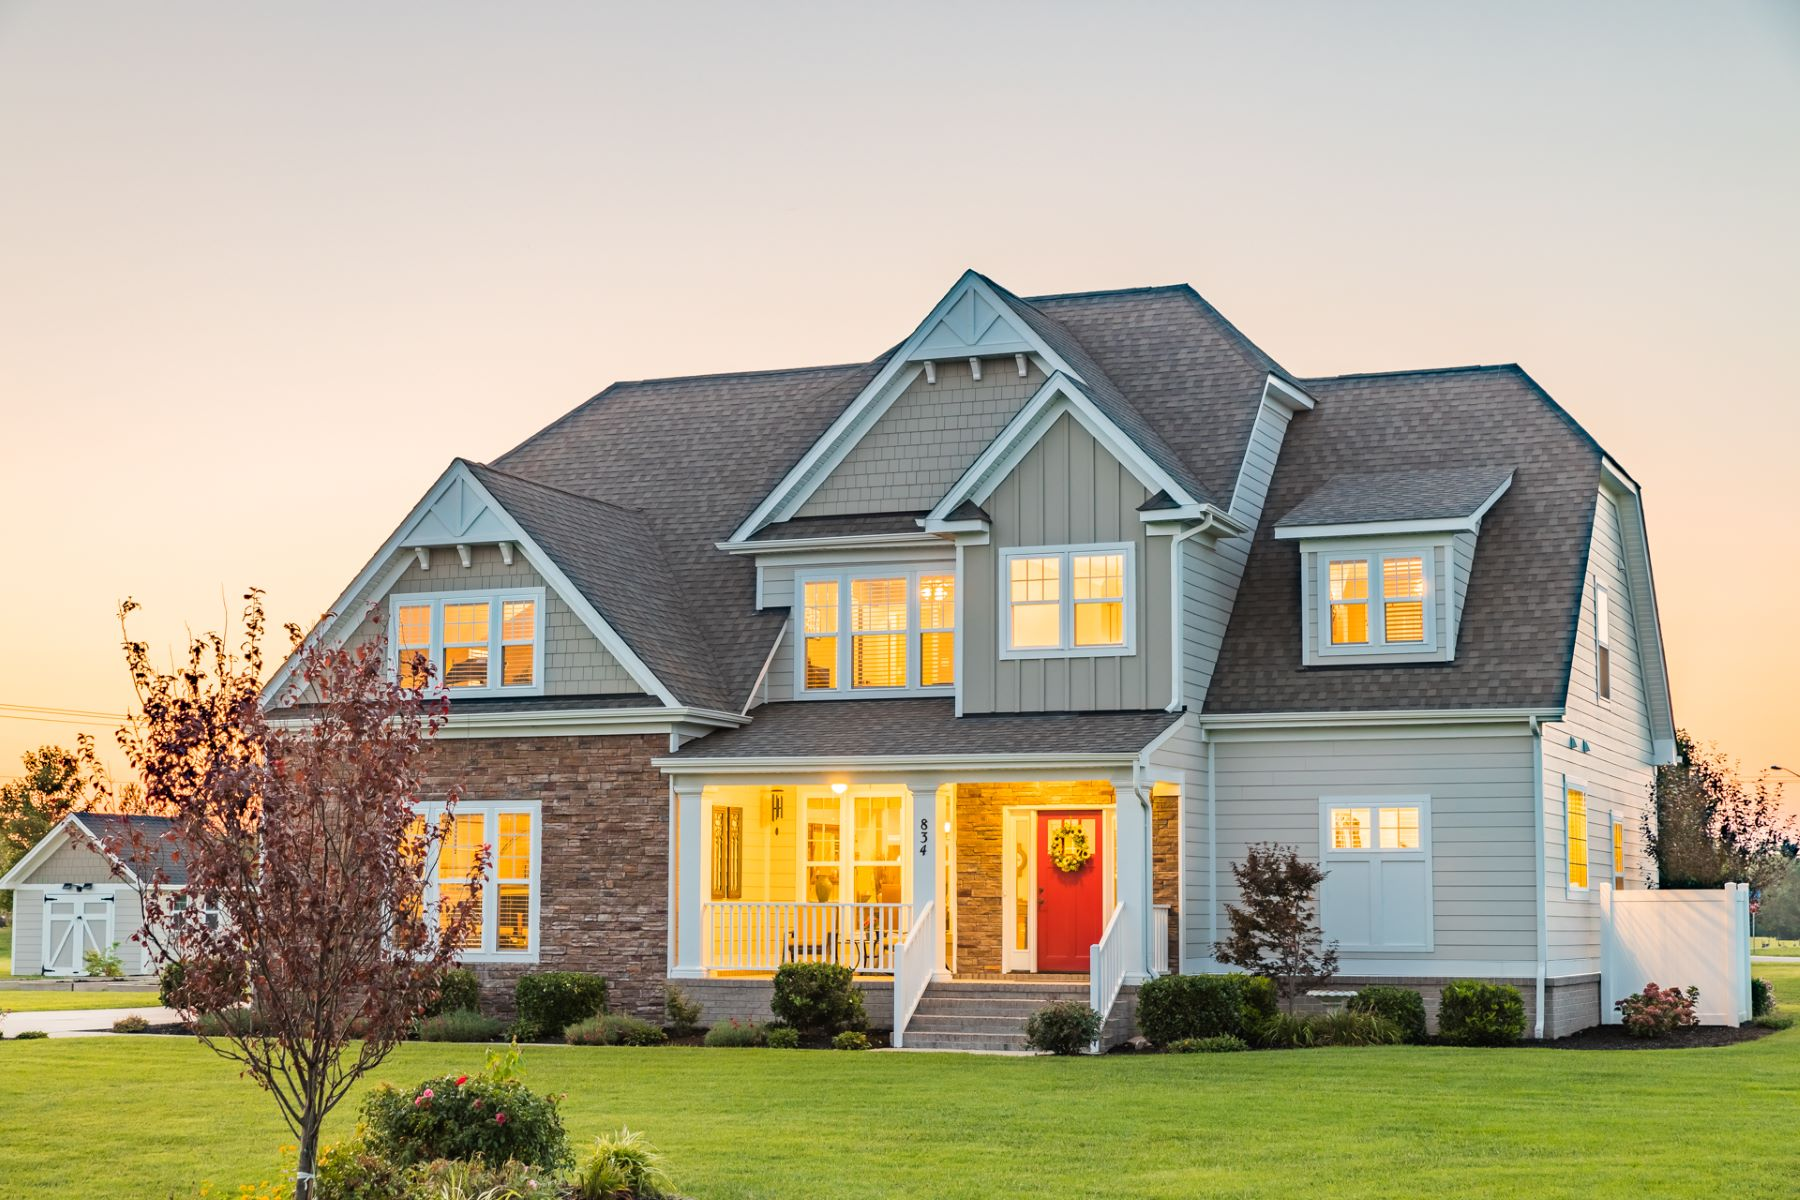 Single Family Homes for Active at Grassfield Meadows 834 Majestic Court Chesapeake, Virginia 23323 United States